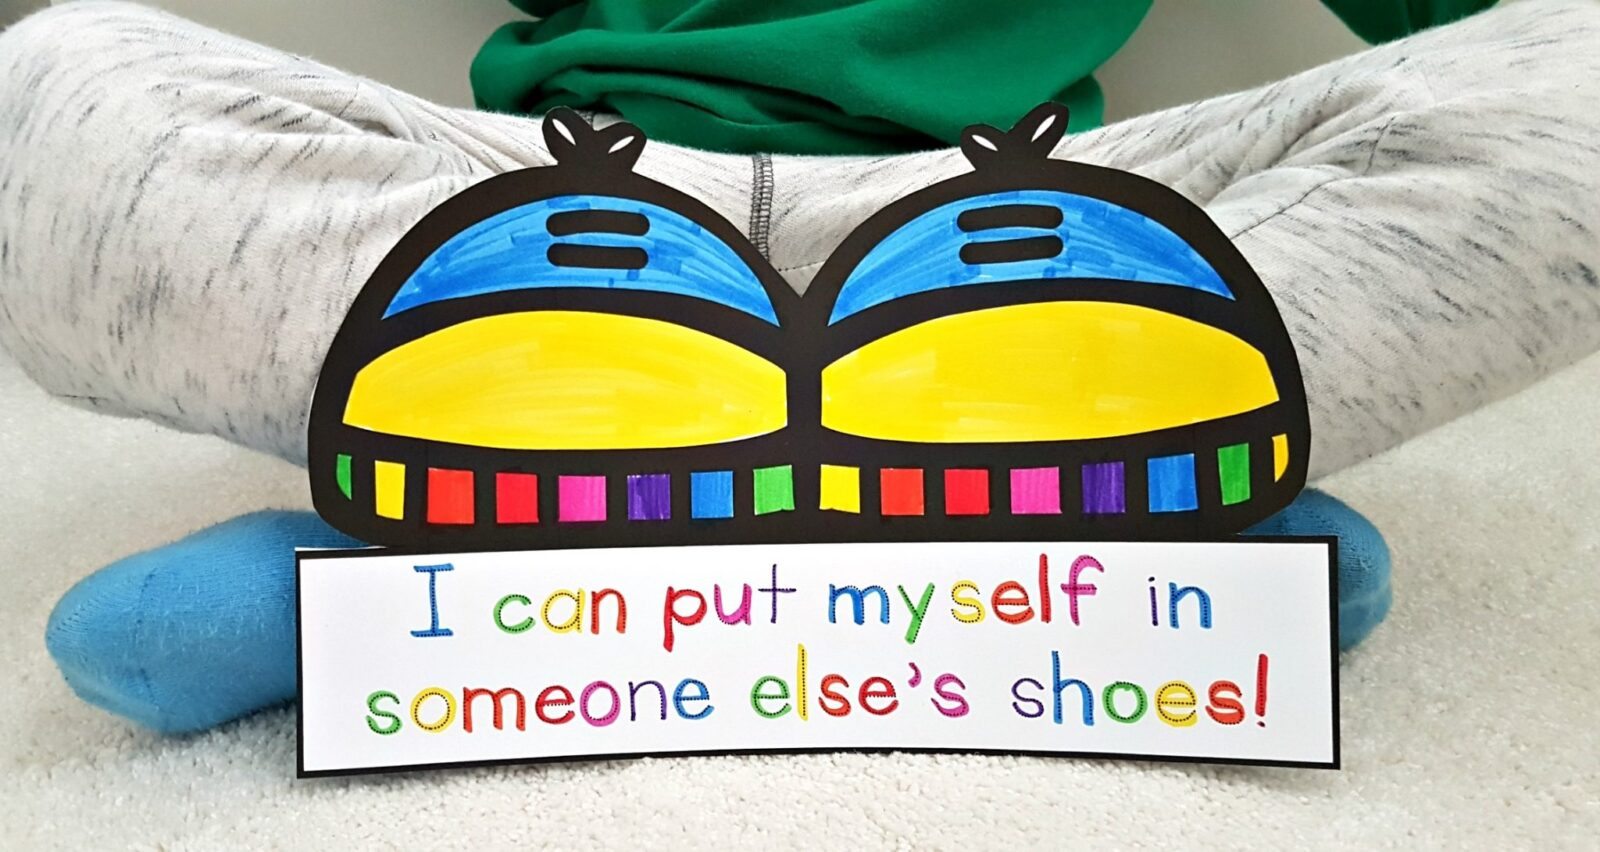 shoe craft with colored quote leaning against a child's legs